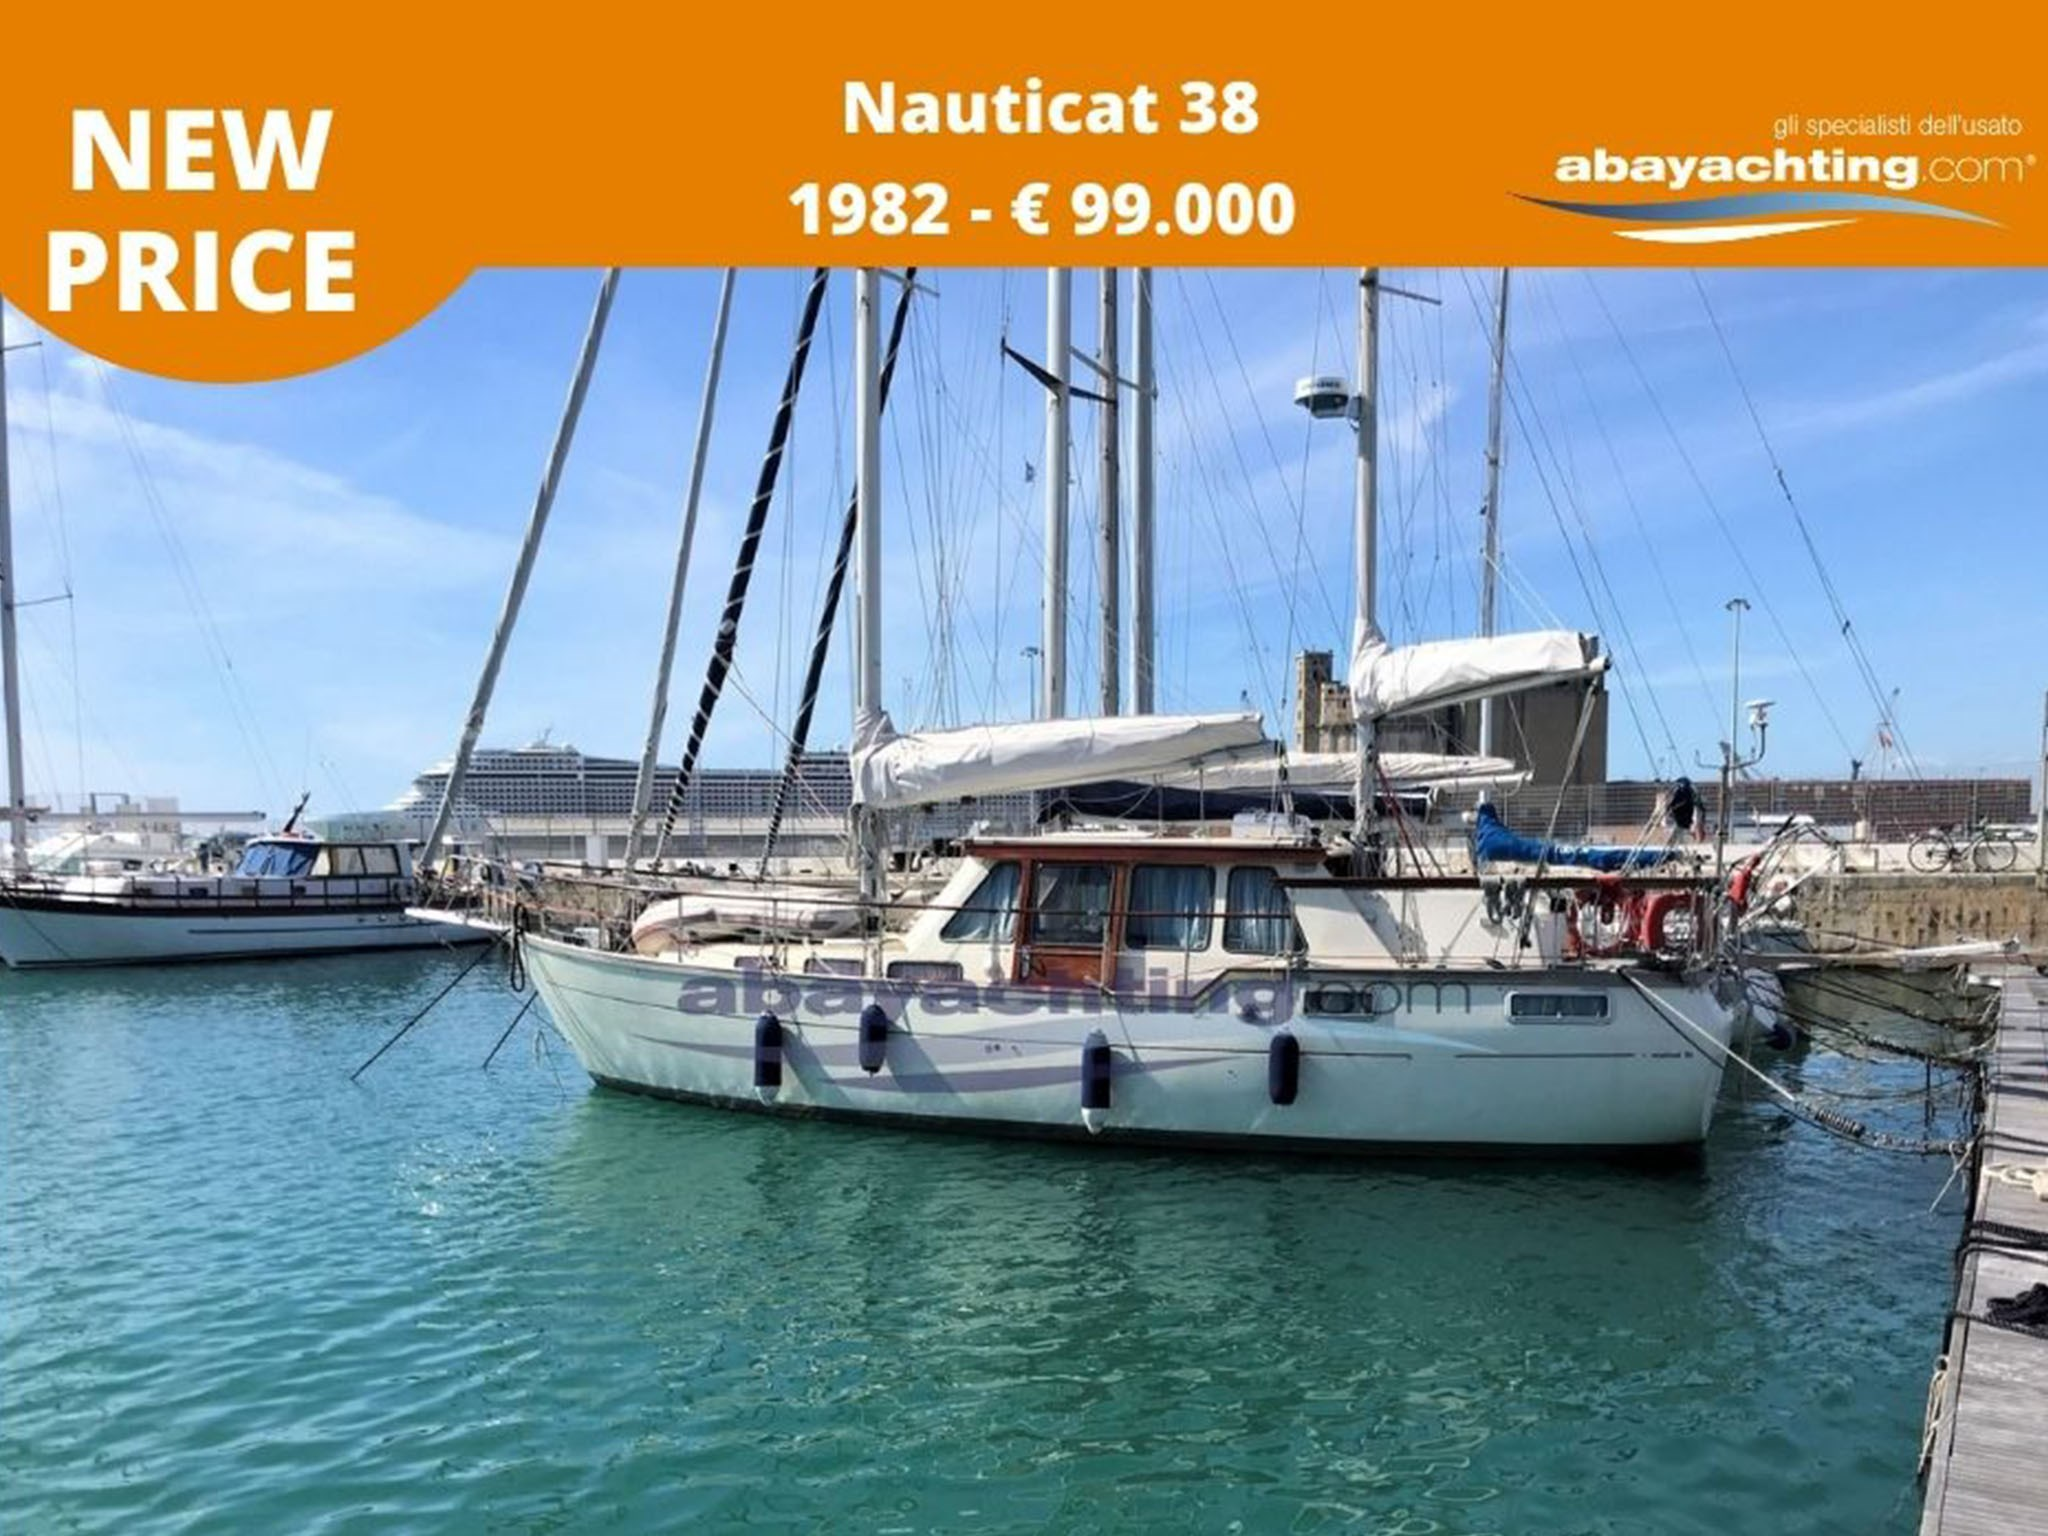 New price Nauticat 38